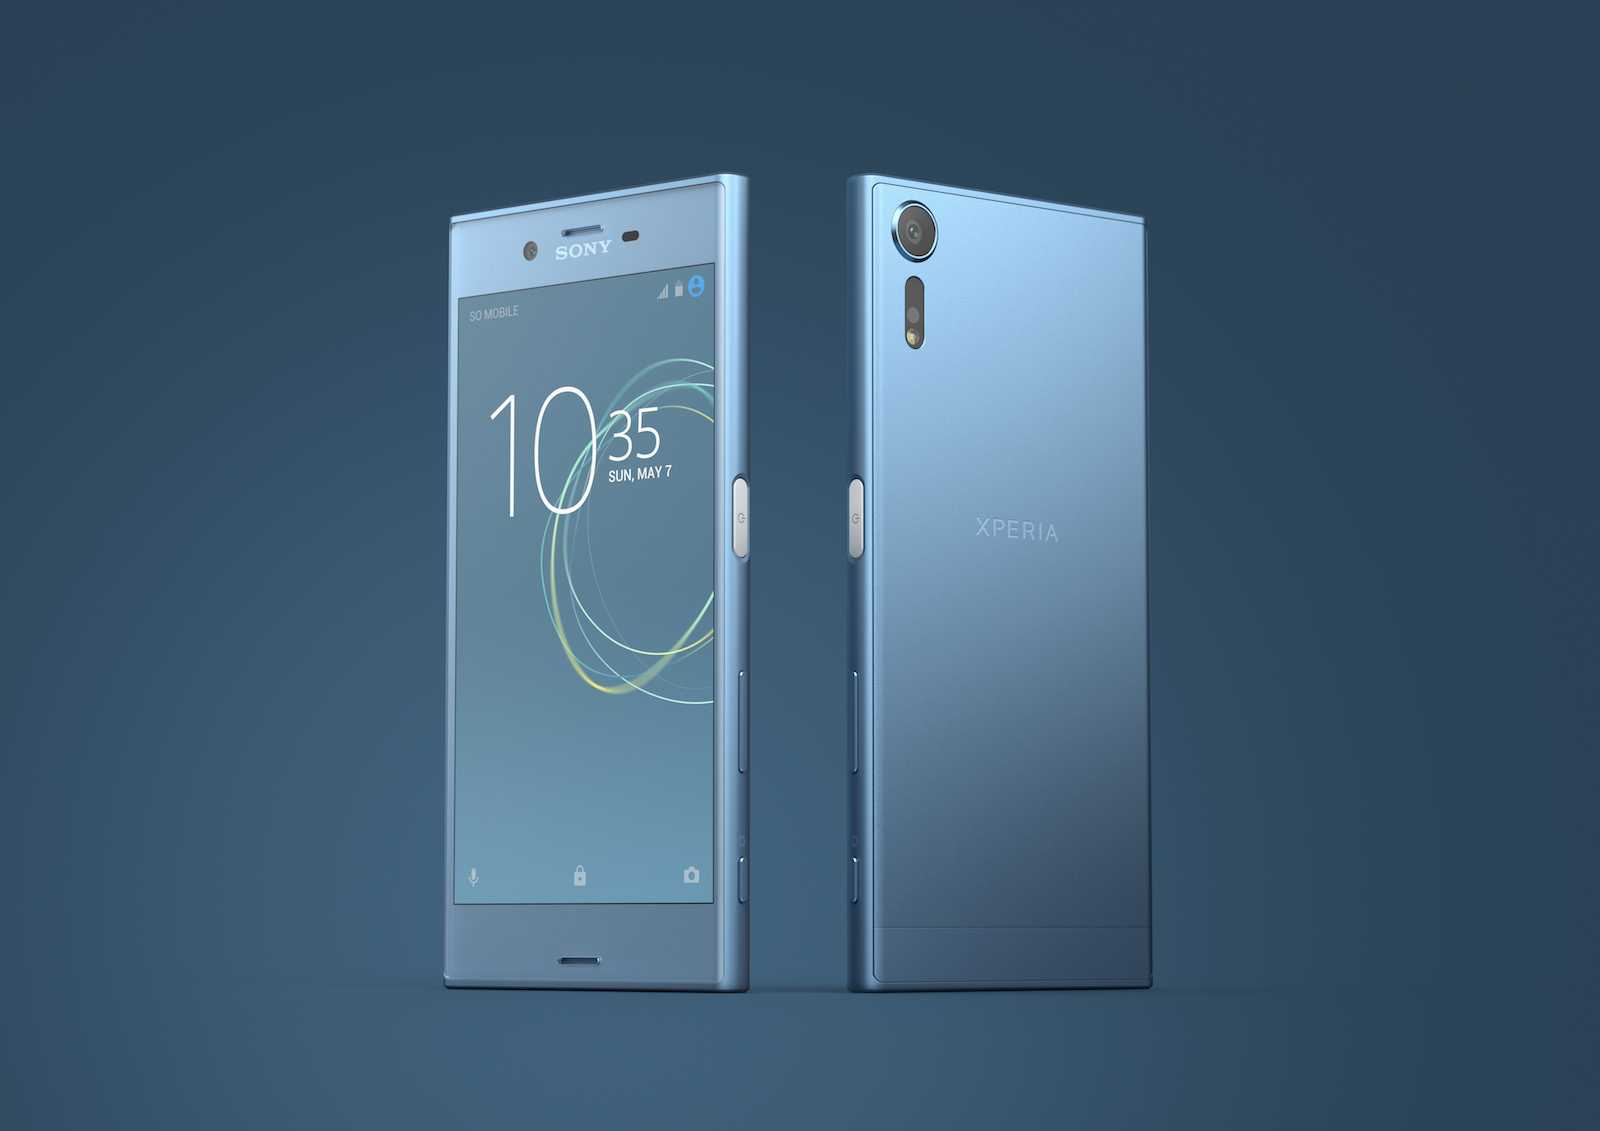 Sony Xperia XZ Premium now listed for pre-order on Amazon UK